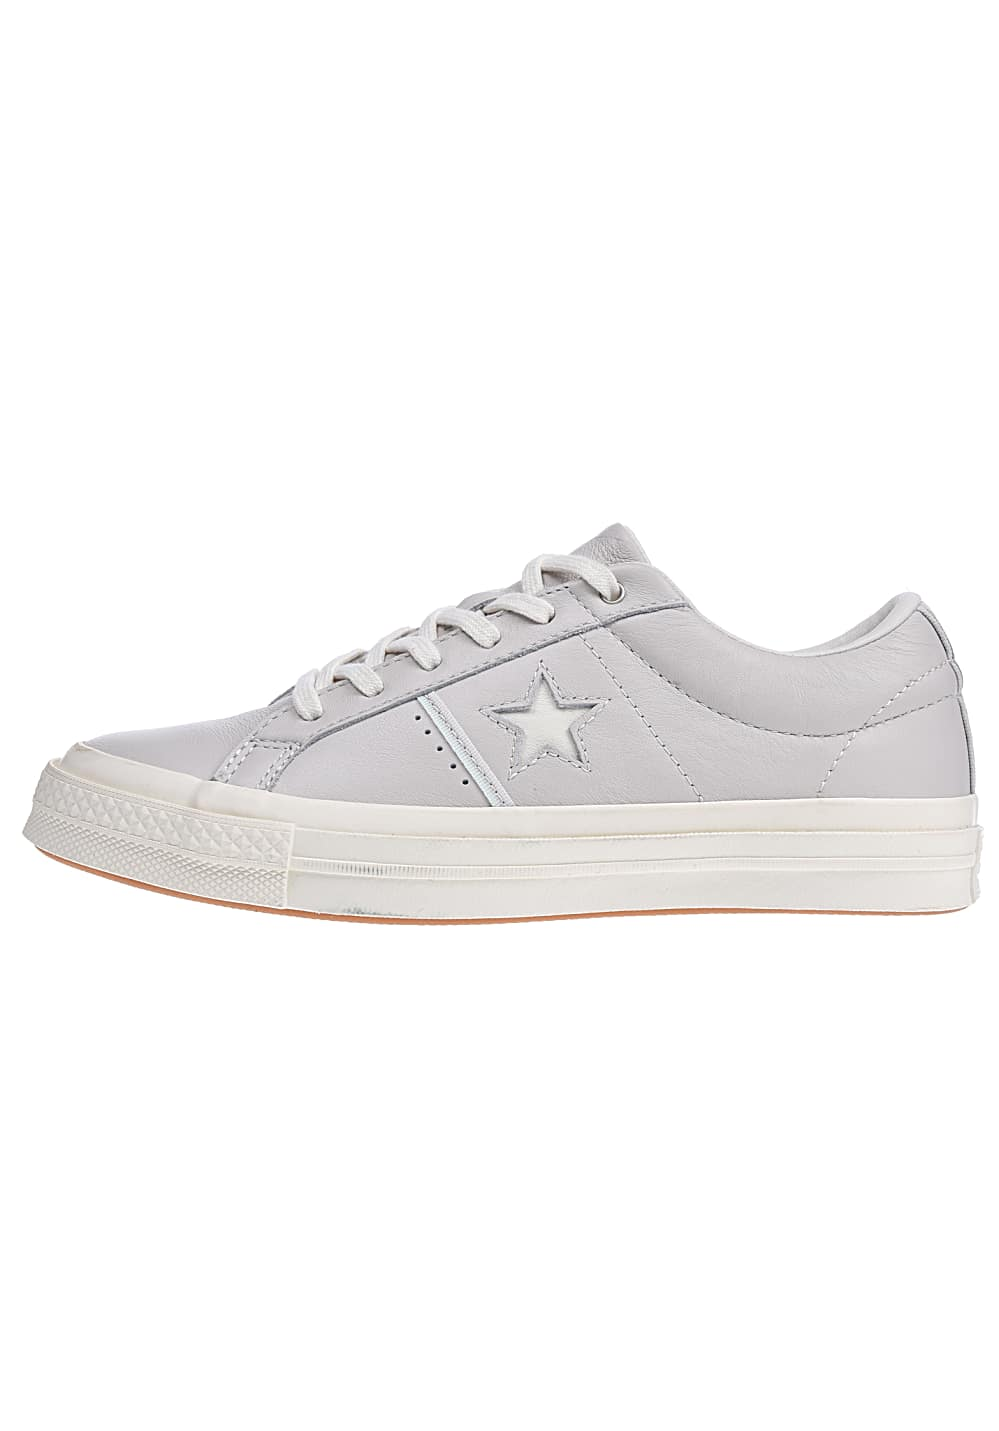 Converse One Star OX Sneaker Grau